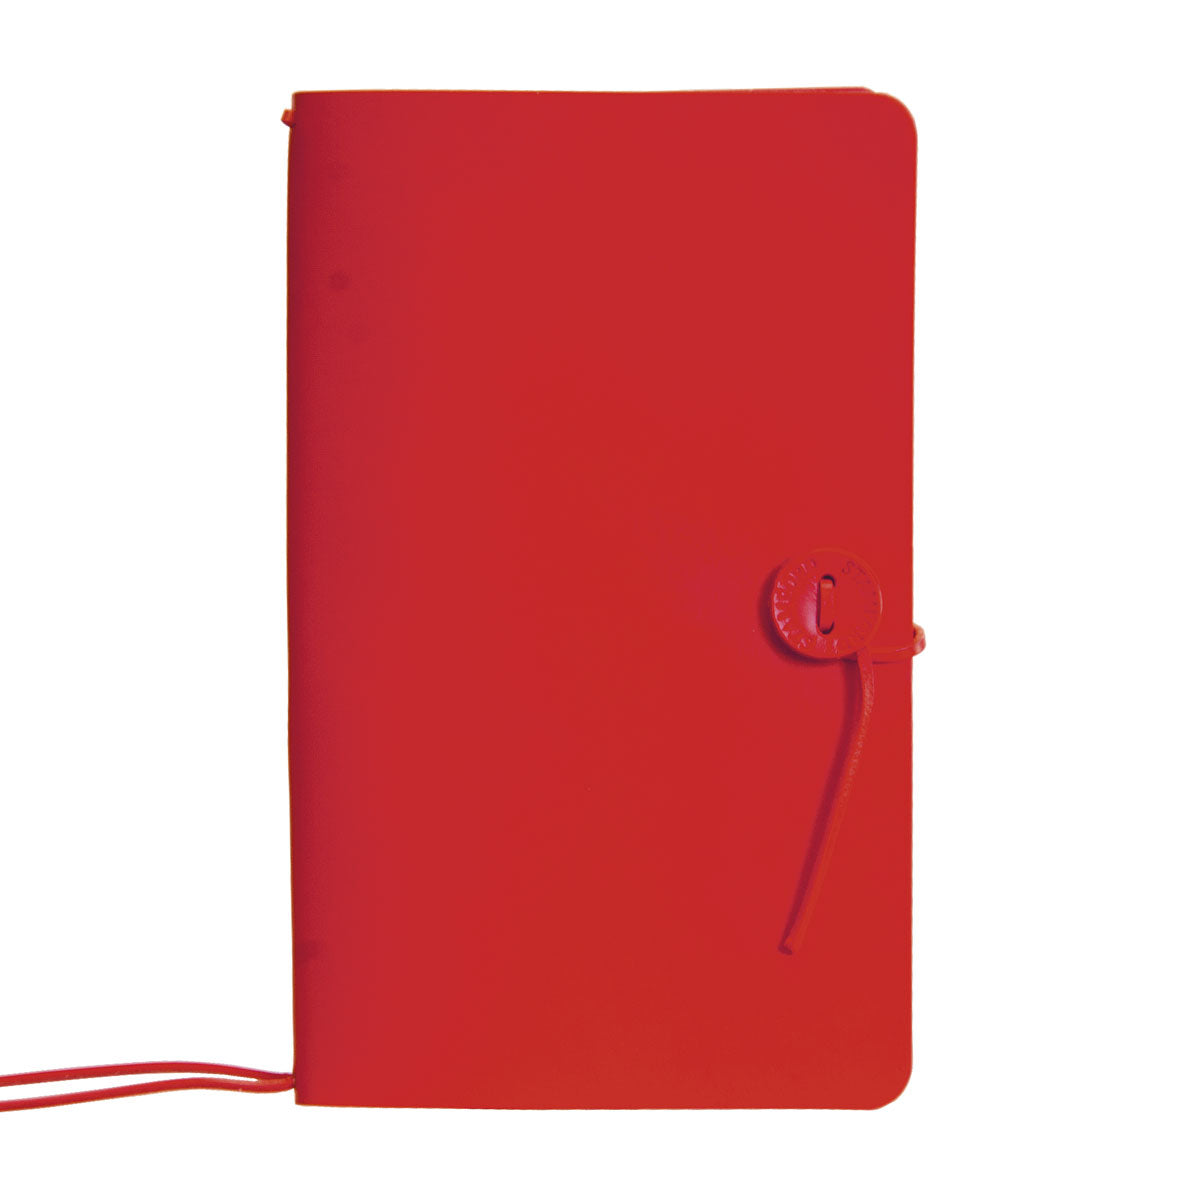 Red leather refillable travellers journal